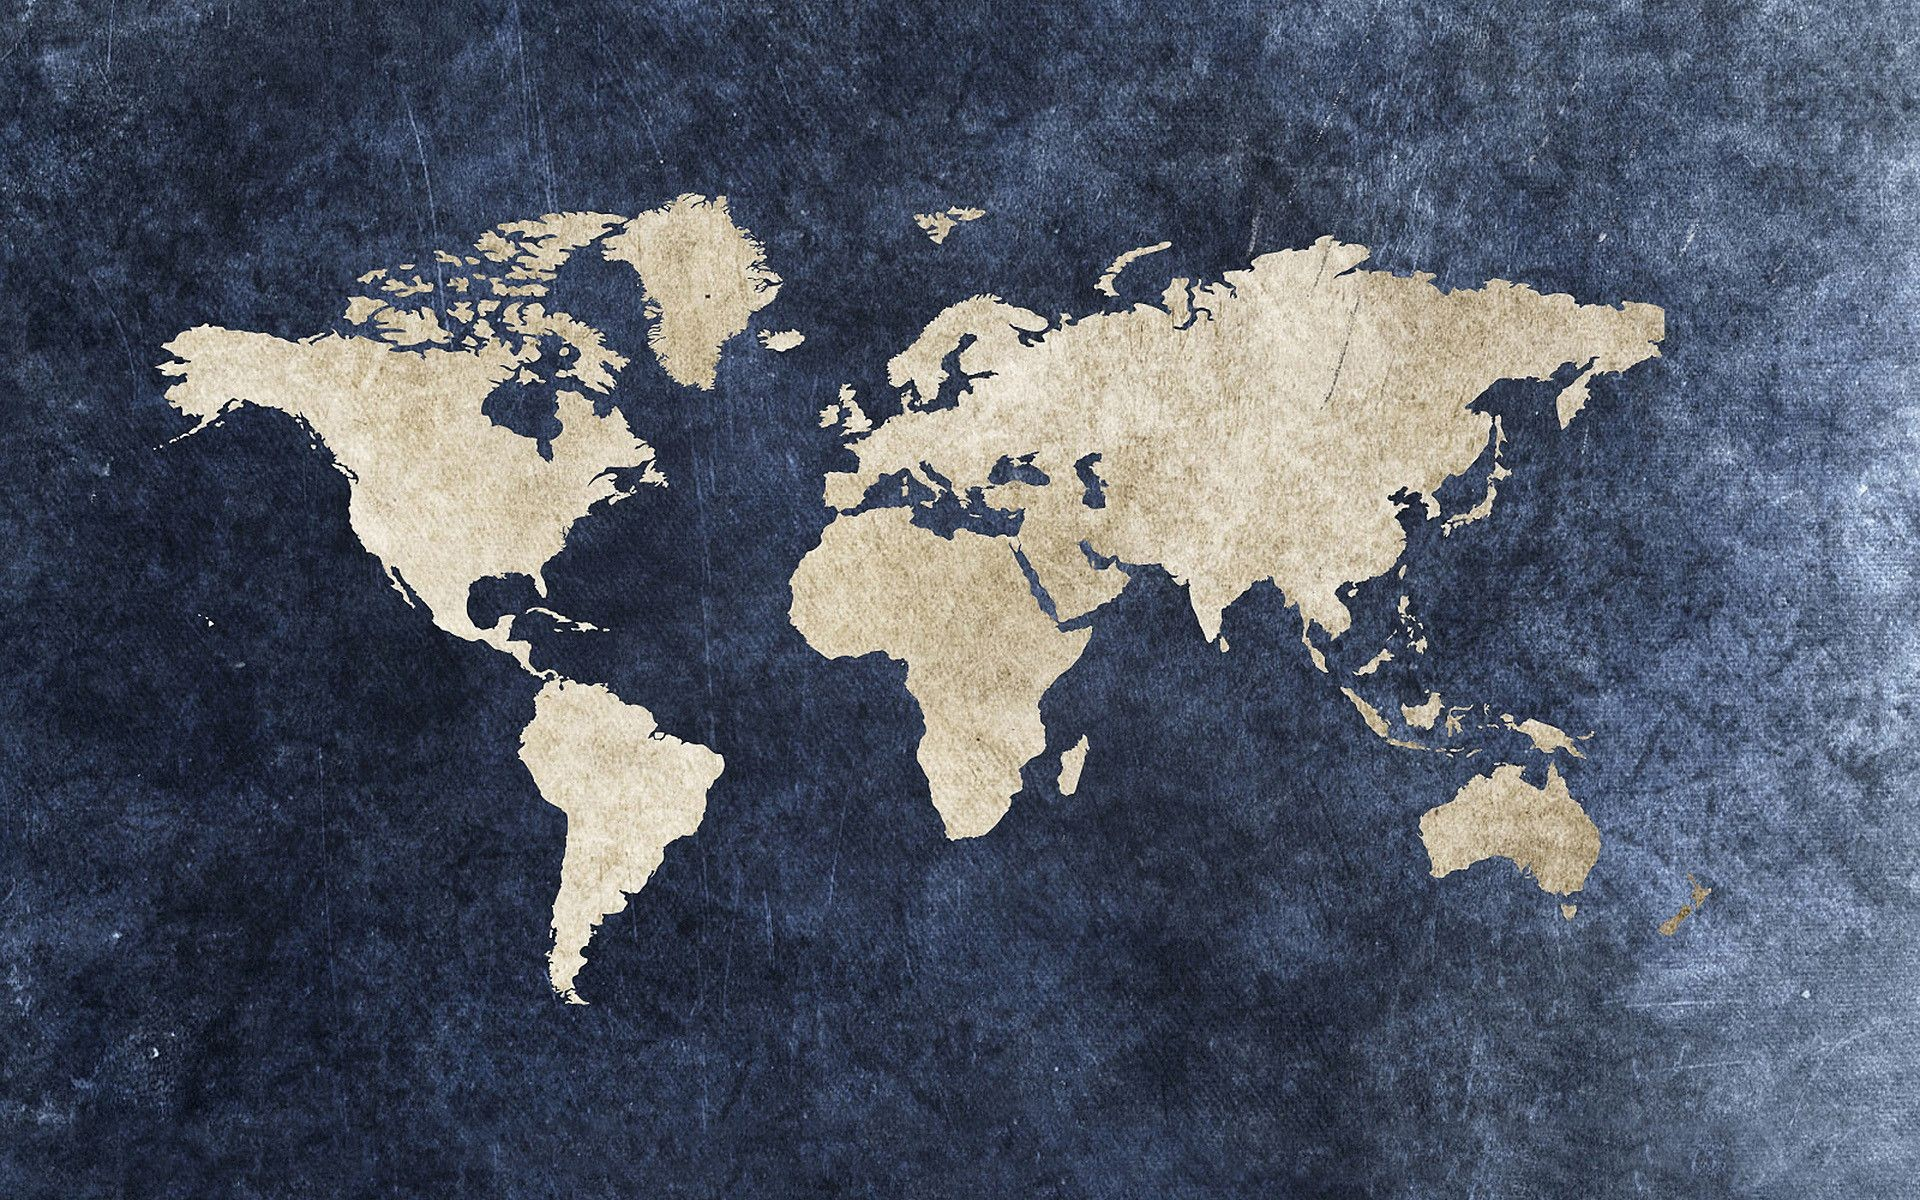 World map wallpaper download free amazing backgrounds for full gumiabroncs Images